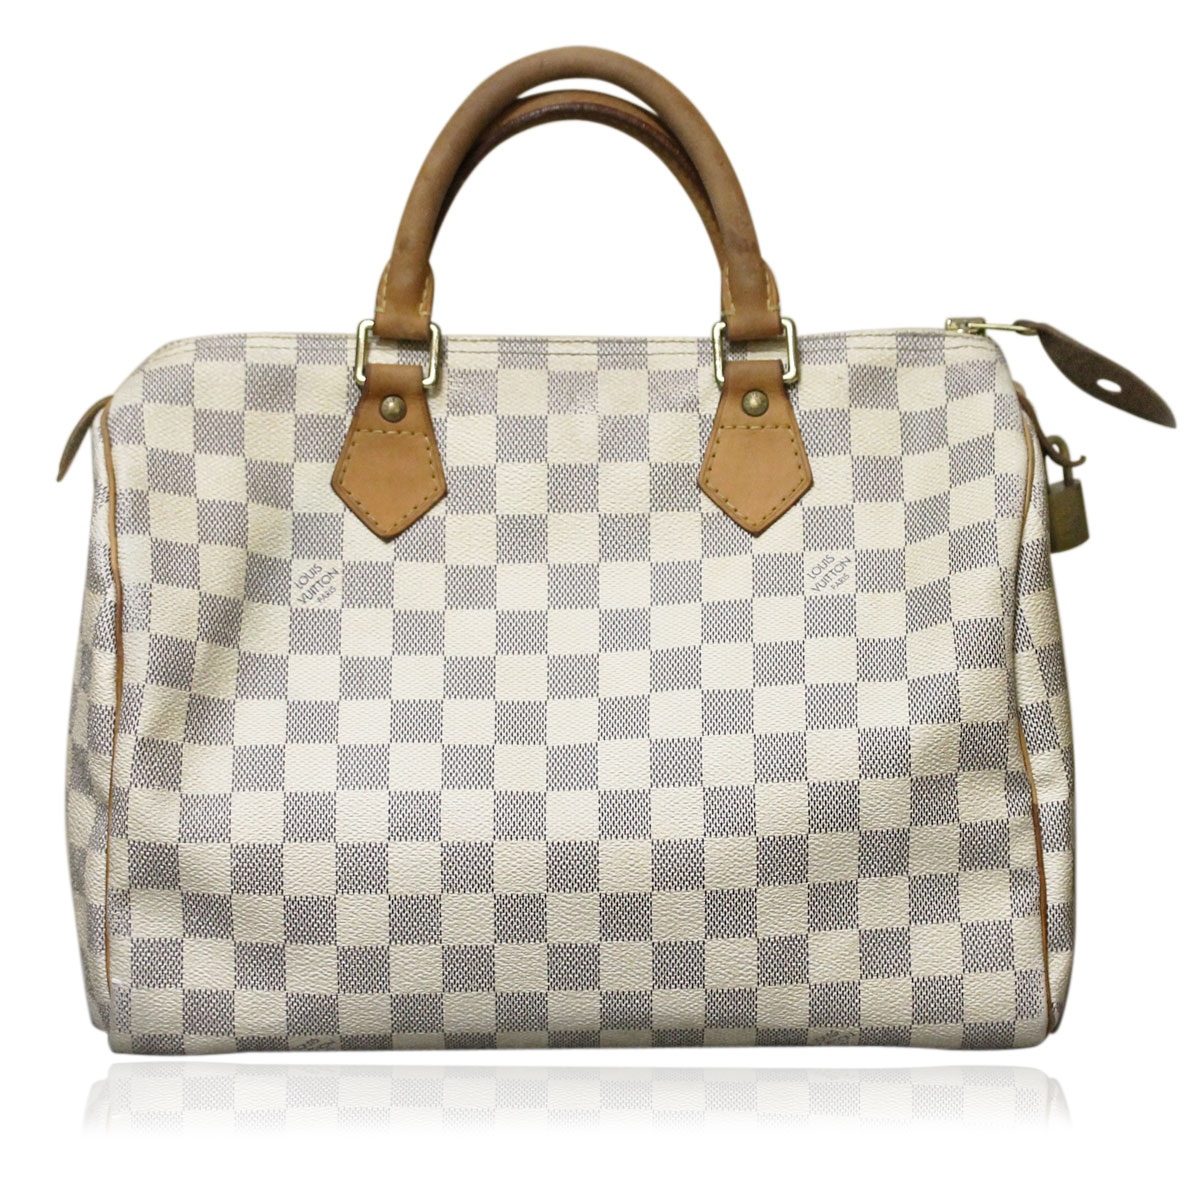 authentic louis vuitton damier azur speedy 30 handbag